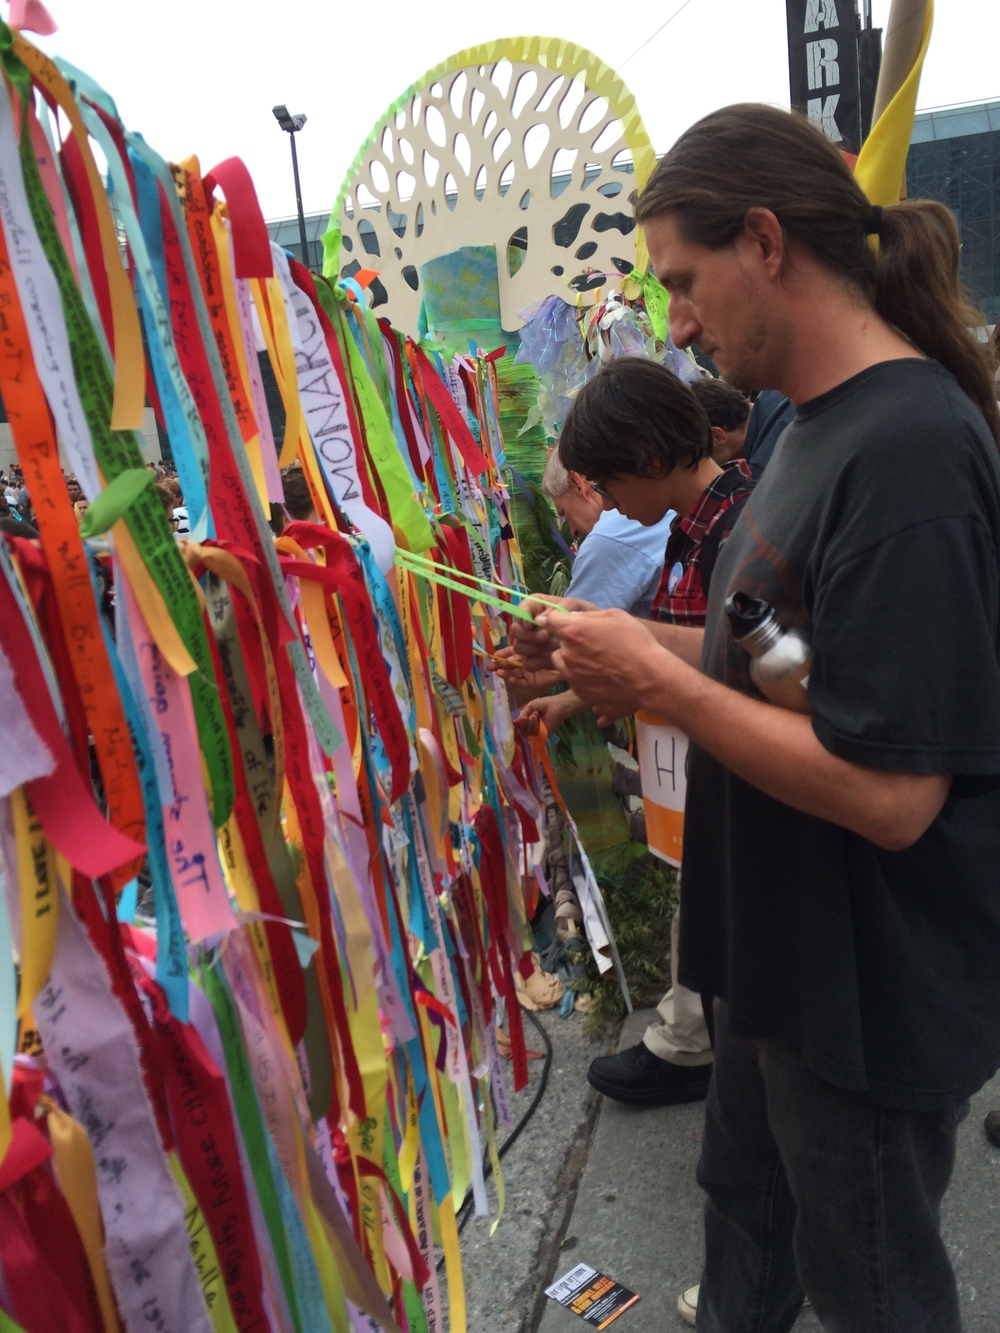 People choosing climate ribbons to take home, Peoples Climate March, NYC